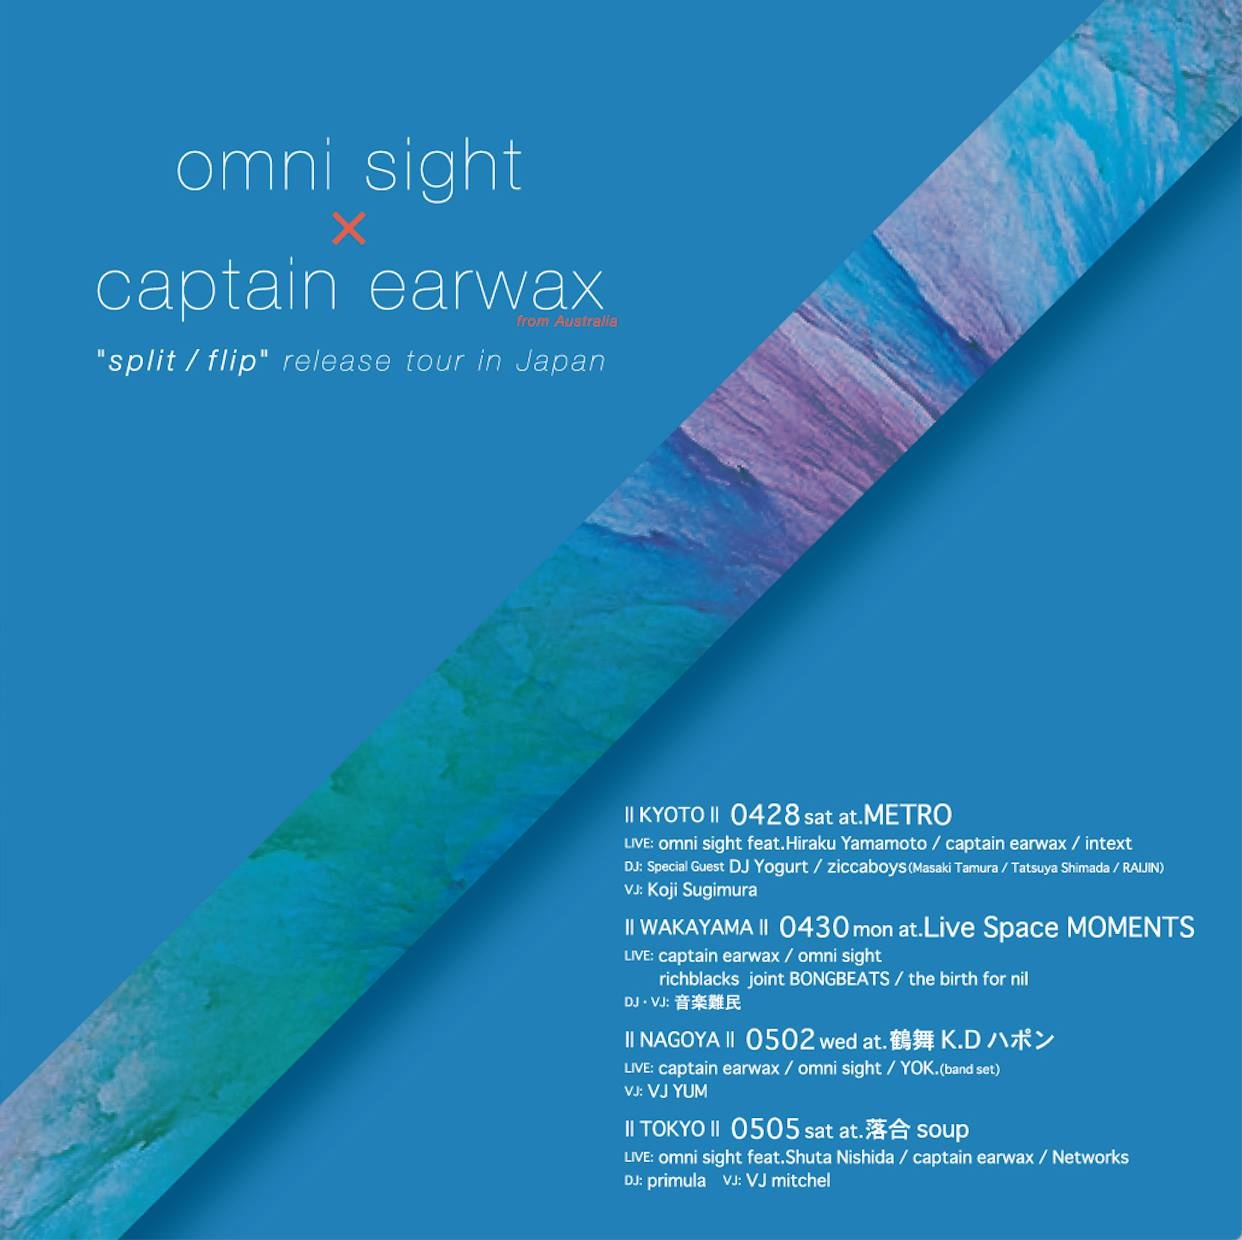 2018/04/30 omni sight × captain earwax